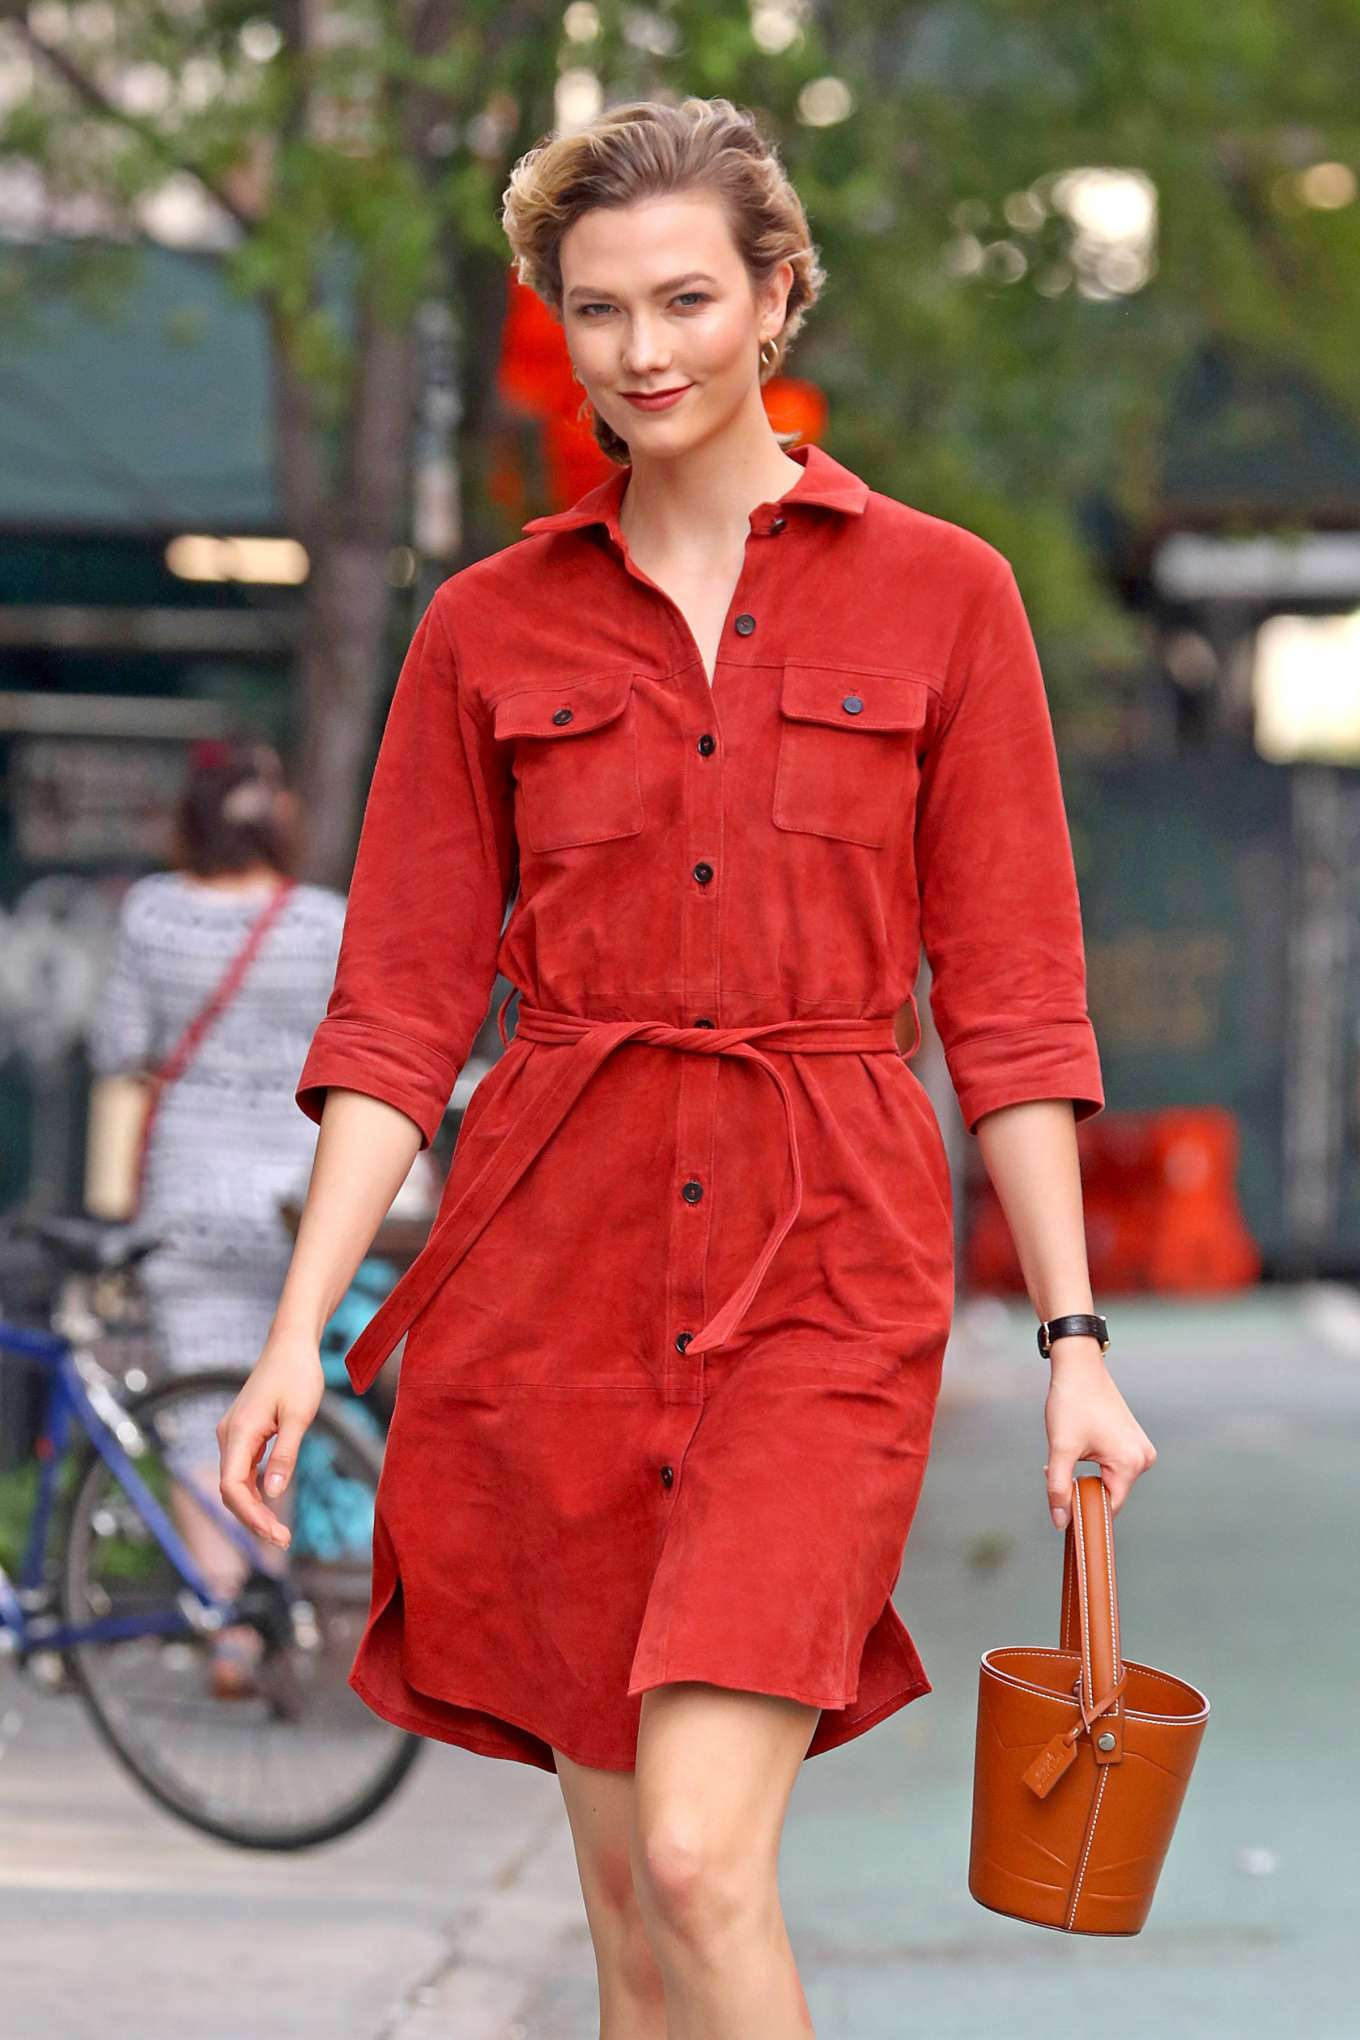 Karlie Kloss - Wearing a Red Dress in NYC